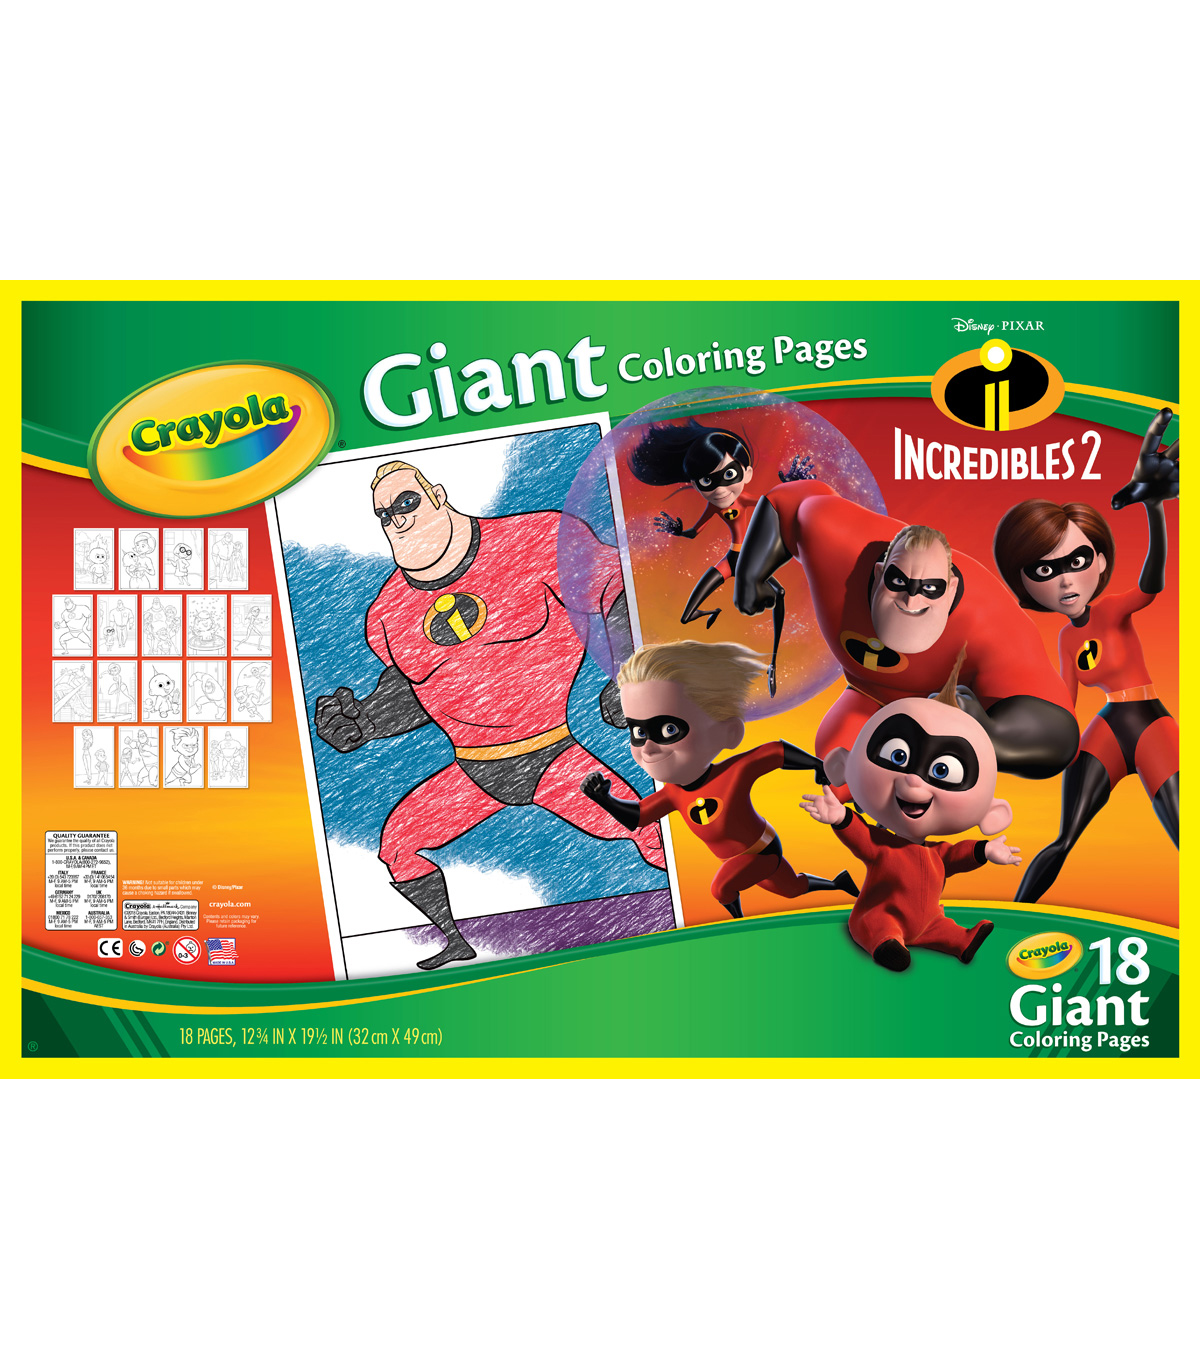 Crayola Giant Coloring Pages Incredibles 2 Joann